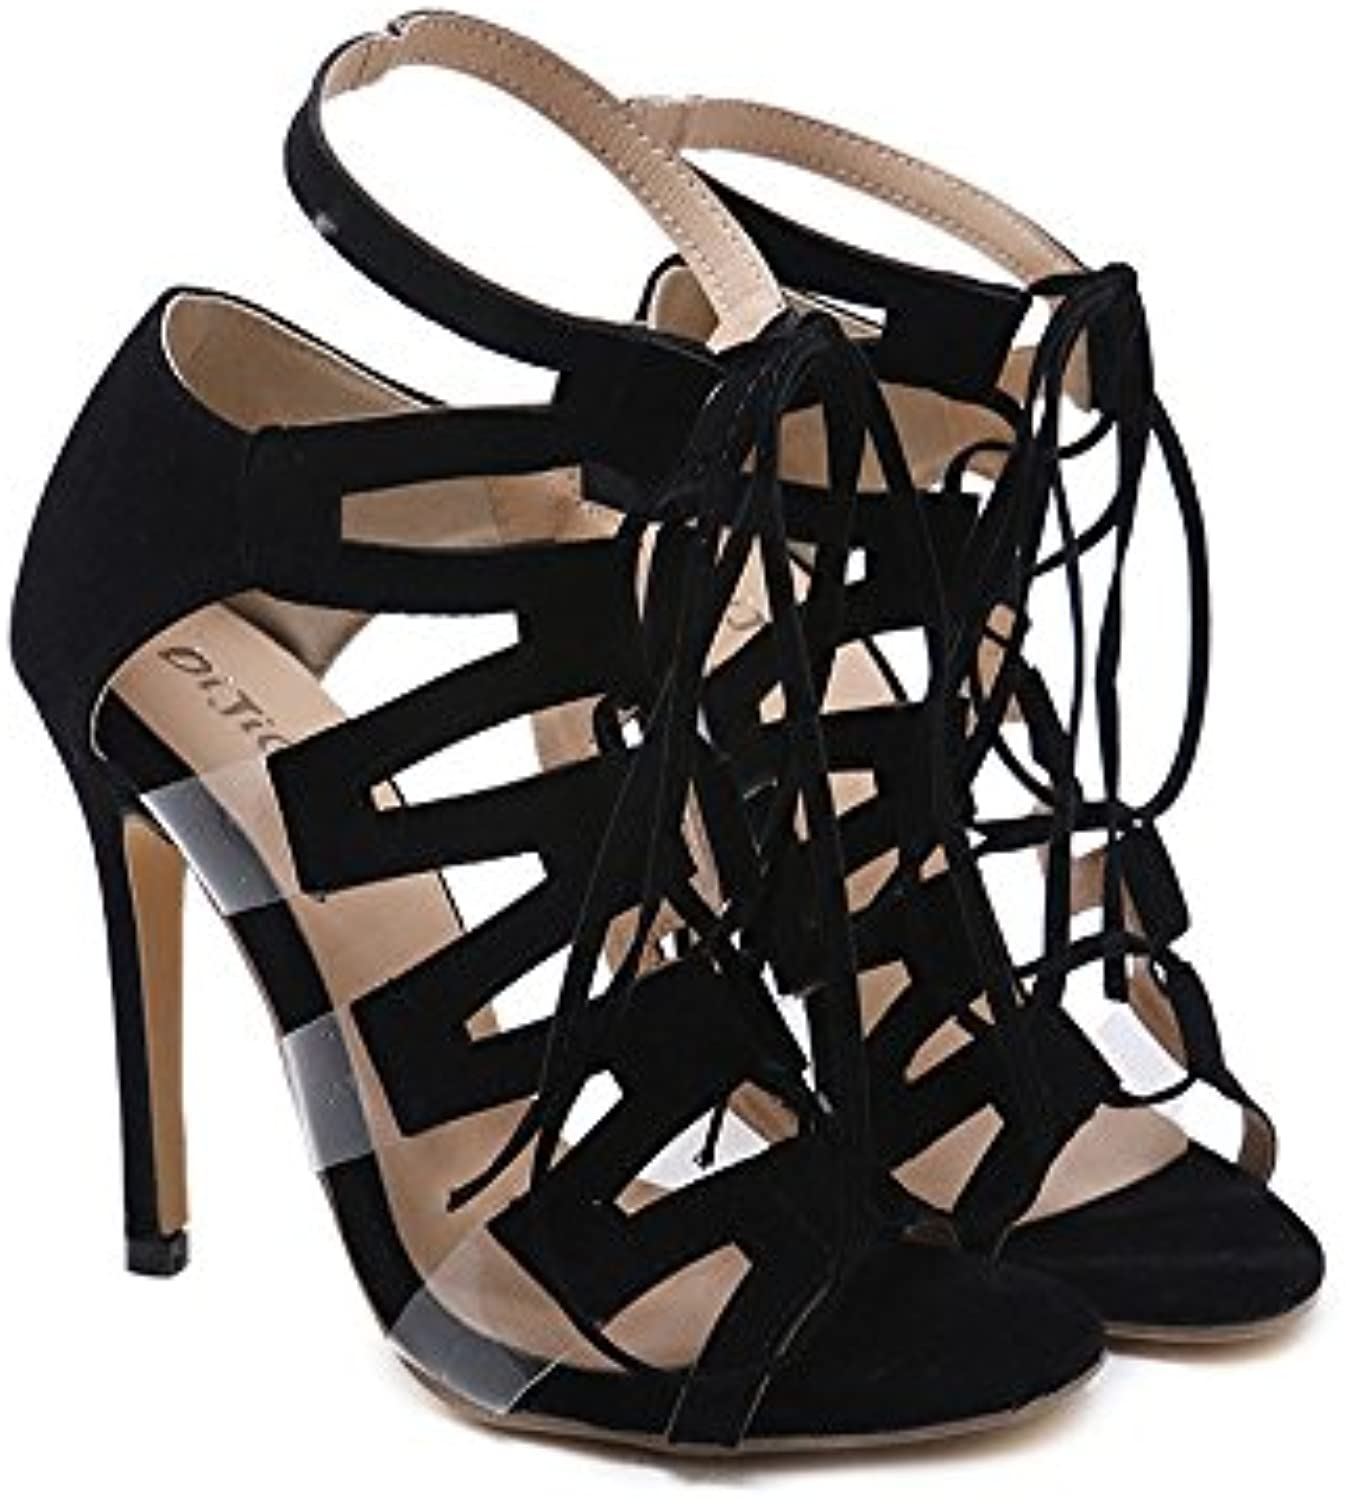 1ce413eb4 Lady stiletto High High High Heel Prom Sandals Ankle Strap peep toe High  Heel Sandals (